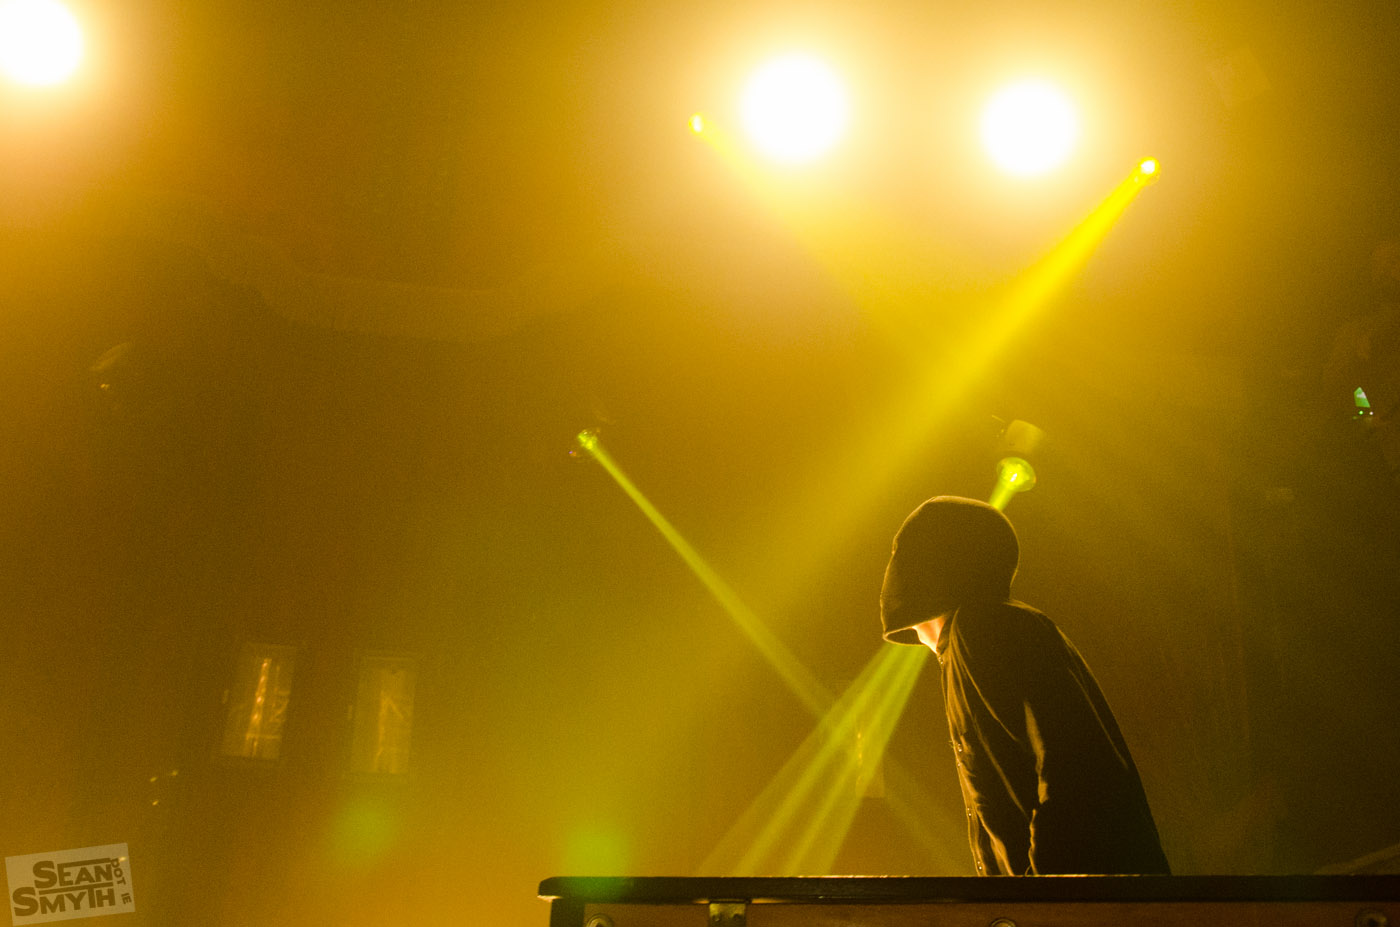 twenty-one-pilots-at-the-academy-by-sean-smyth-16-11-14-15-of-41_15621415628_o